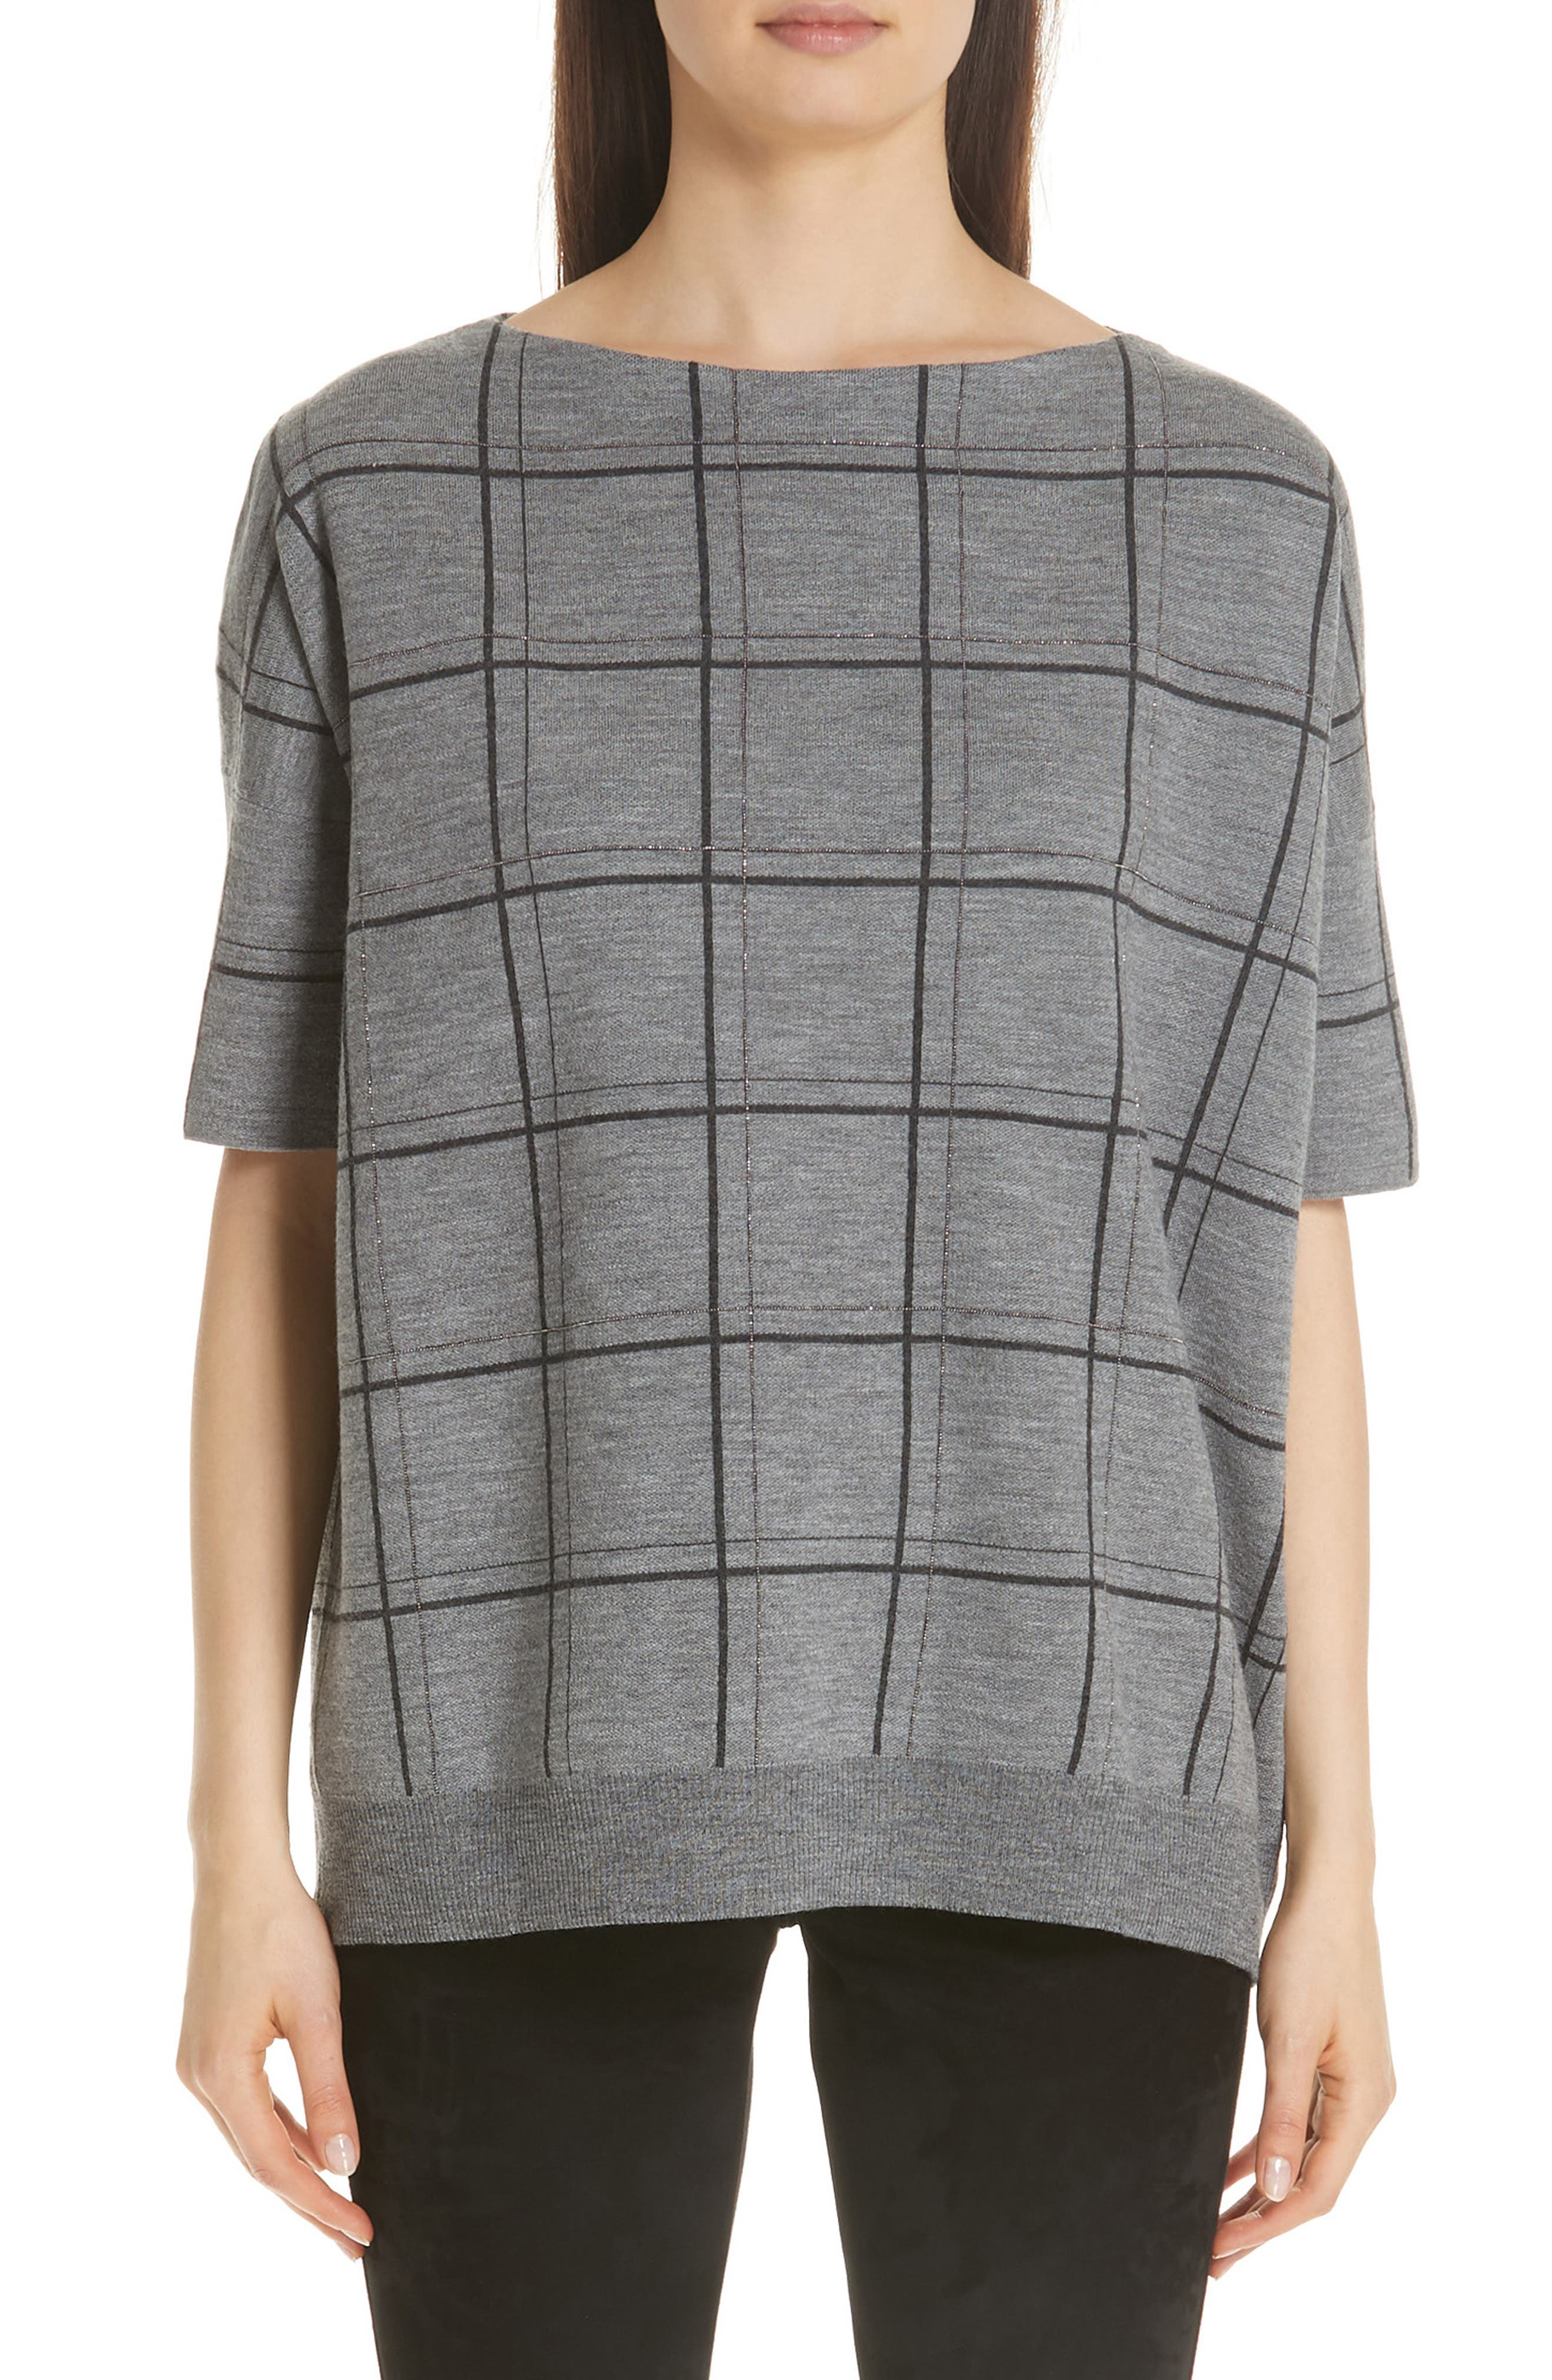 LAFAYETTE 148 NEW YORK,                             Chain Embellished Oversize Jacquard Sweater,                             Main thumbnail 1, color,                             056